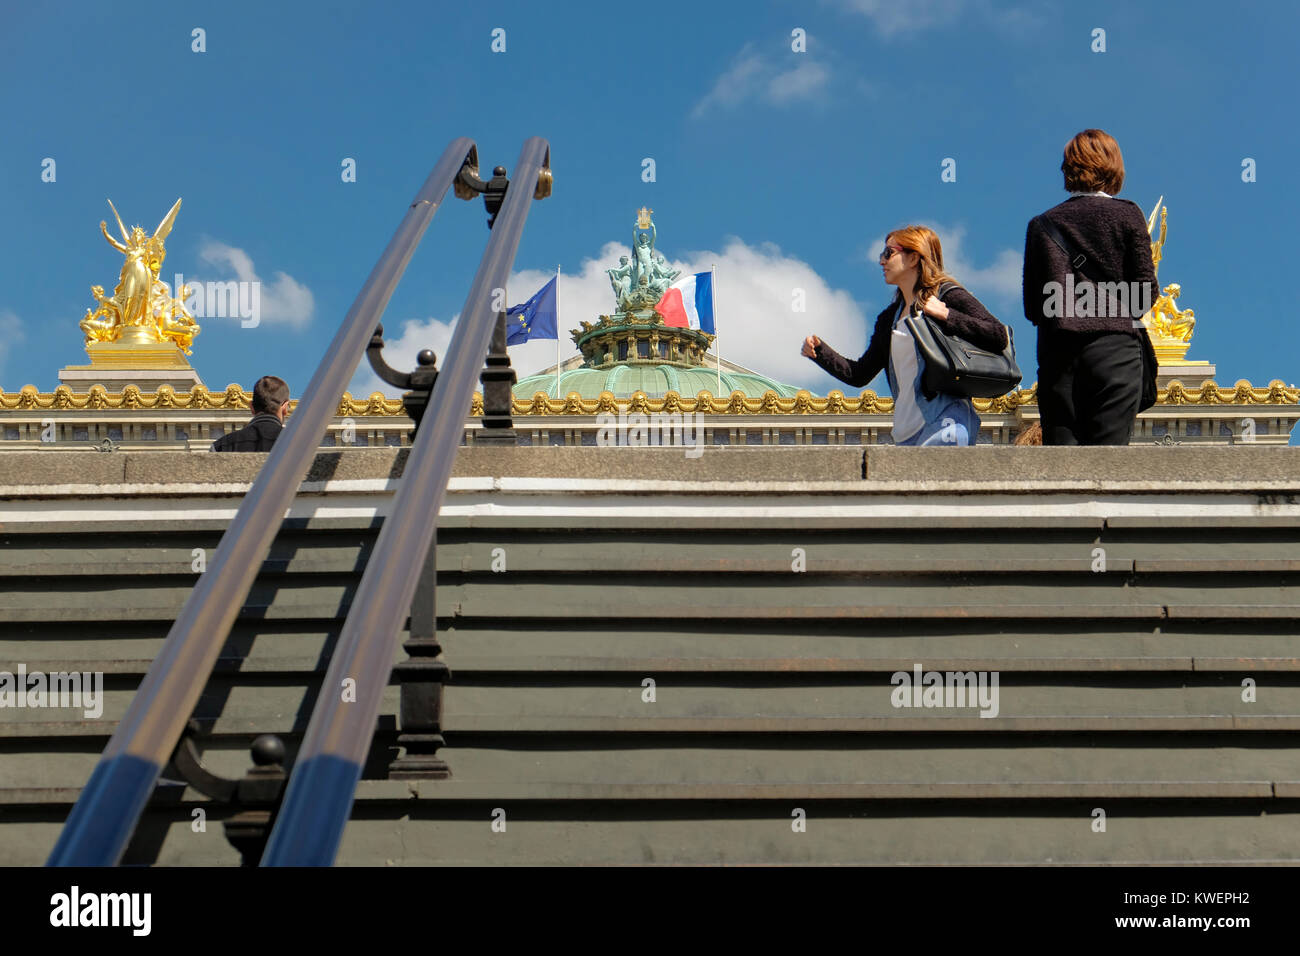 France, Paris, Two women with roof of Opera Garnier behind them. - Stock Image